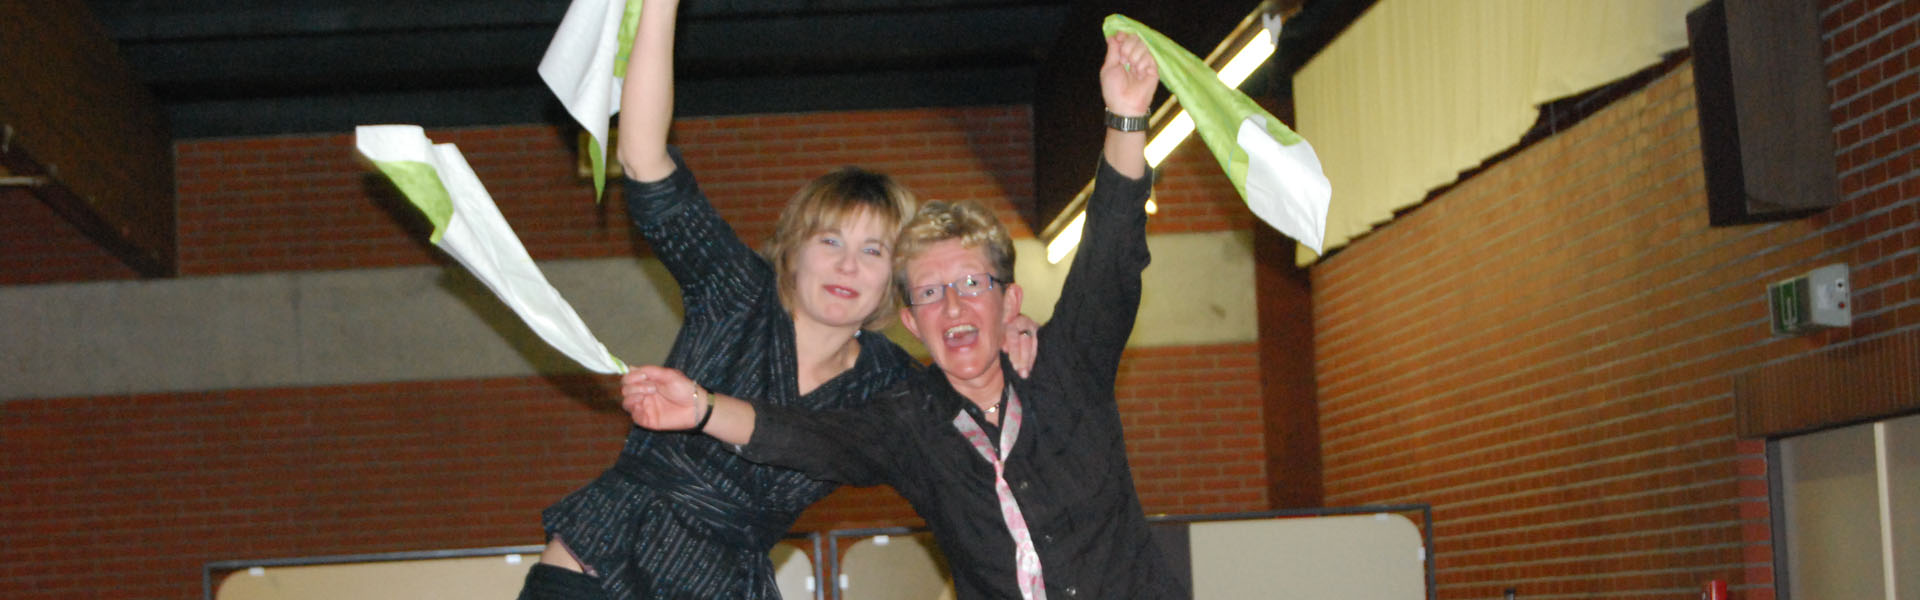 Valkenfeest2009